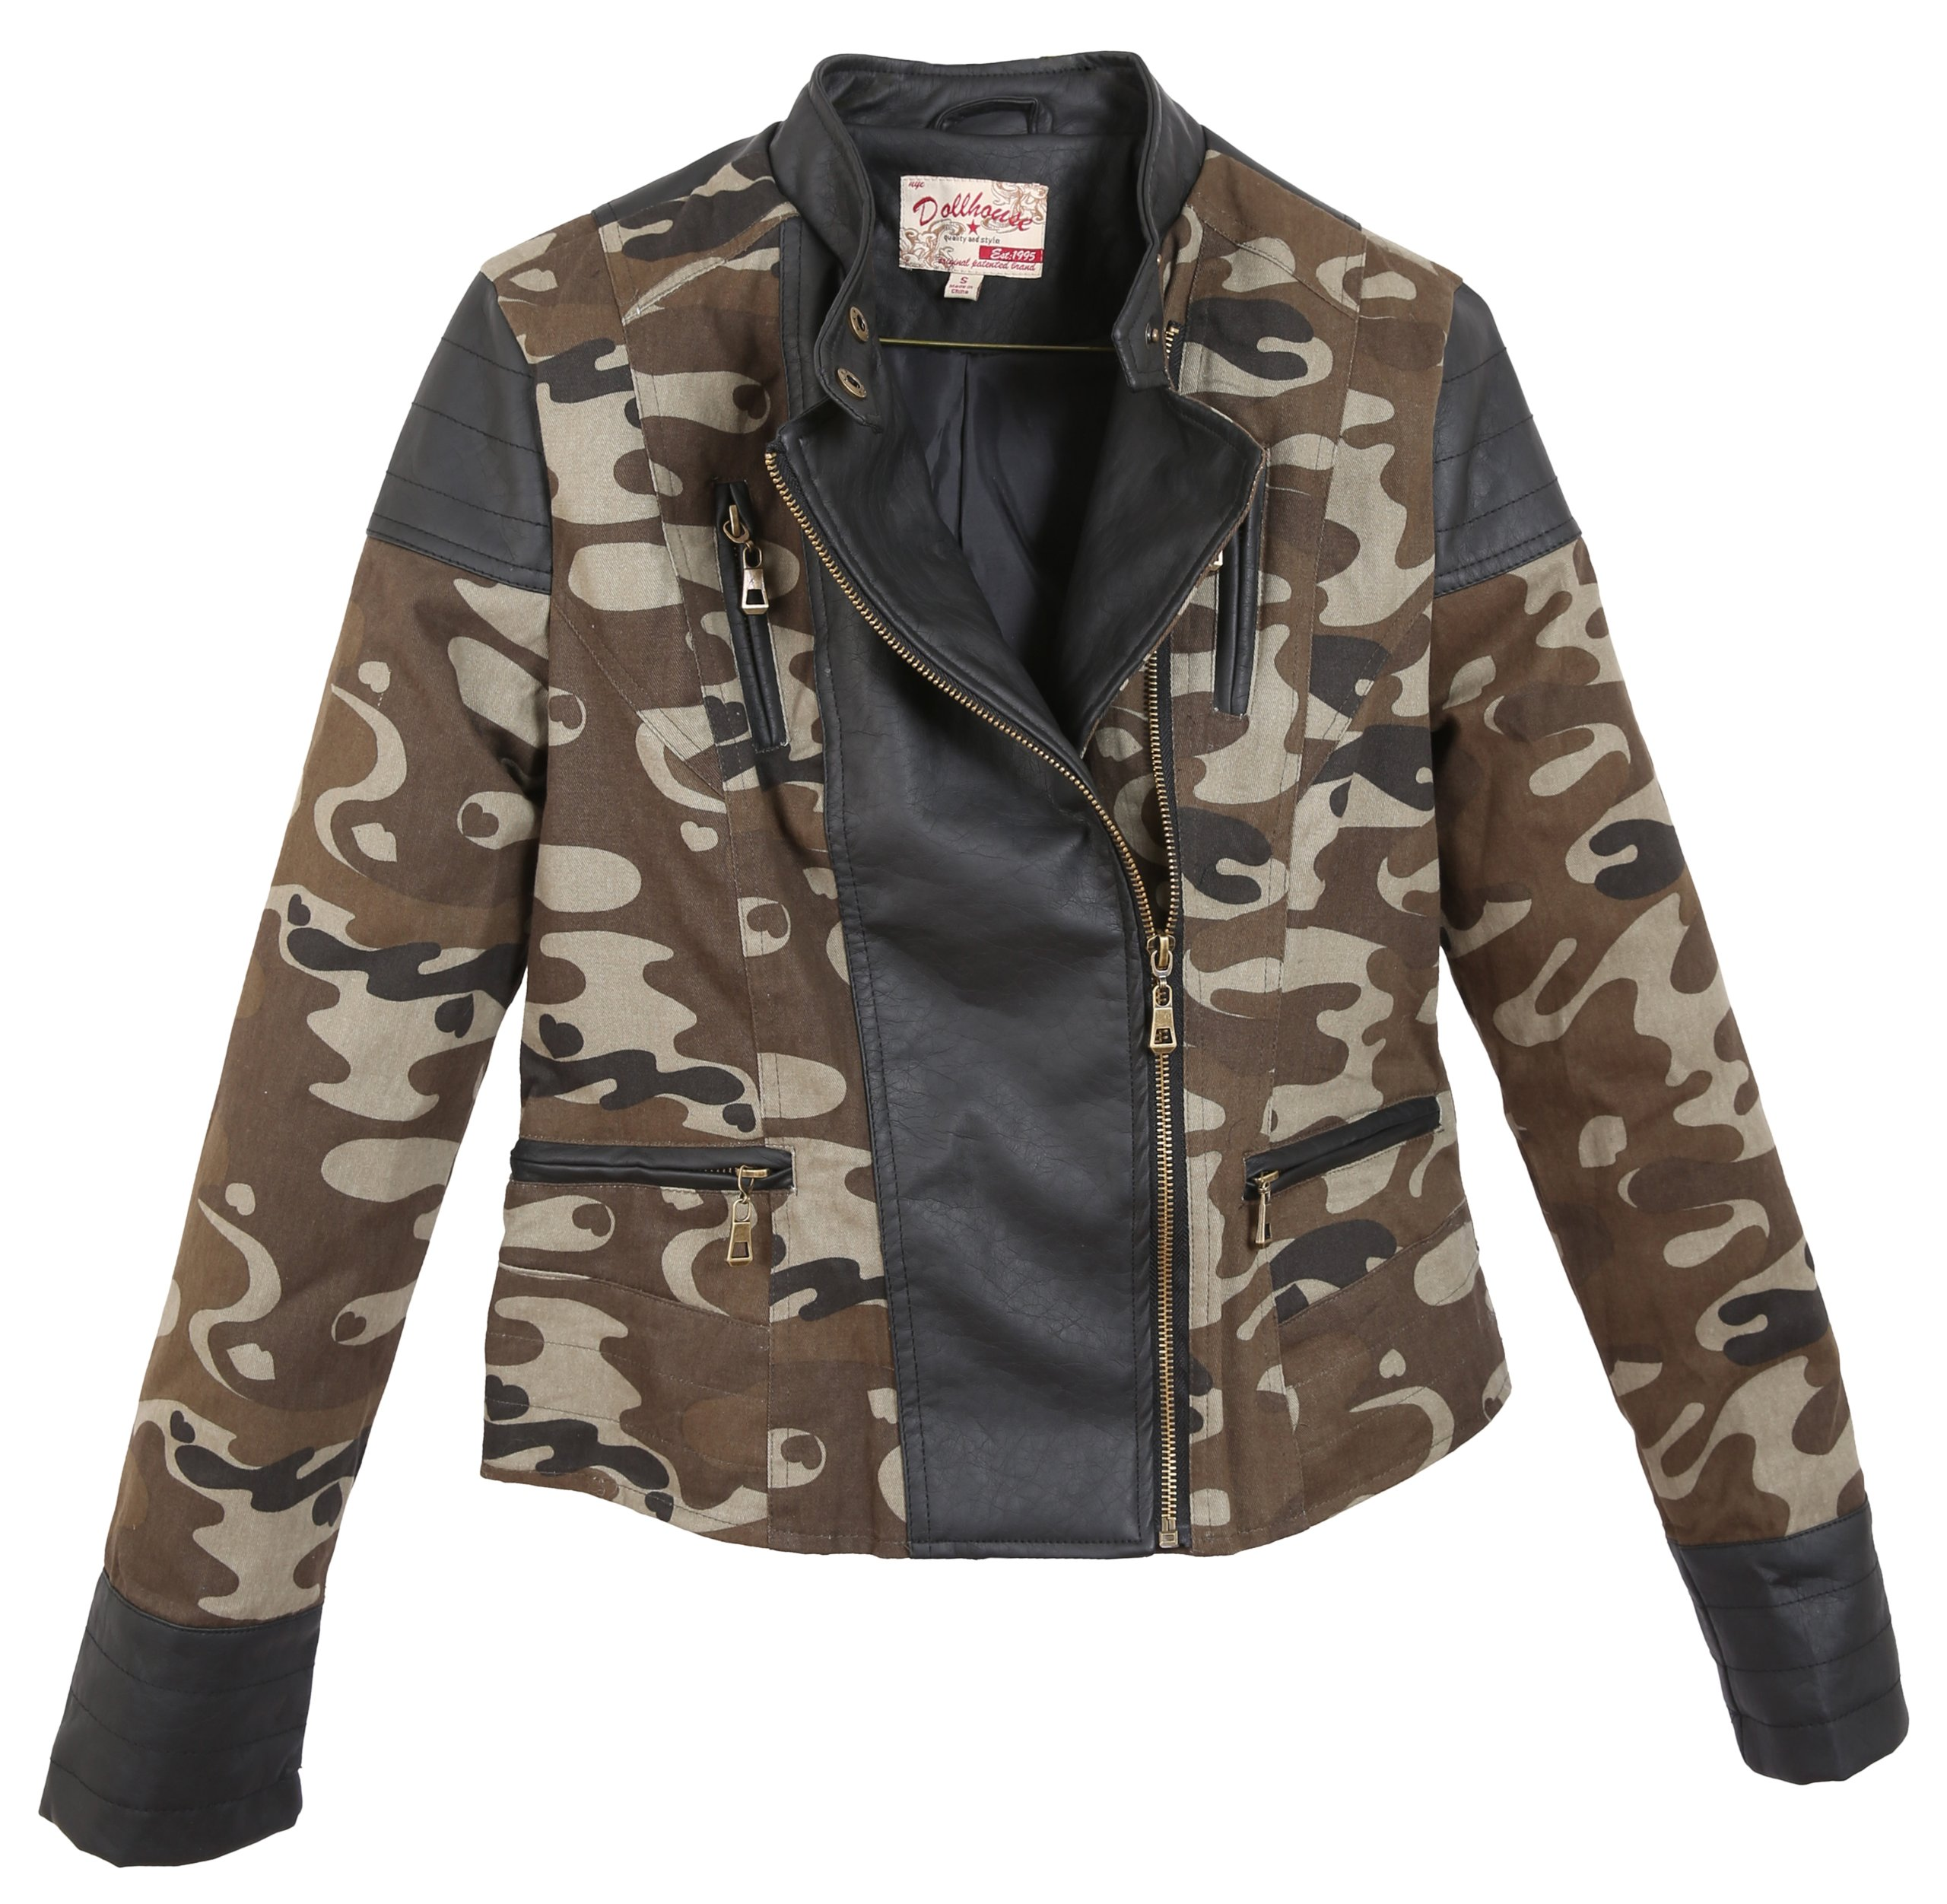 Dollhouse Junior'S Full Zip Leather Trimmed Jacket With Buttoned Mock Neck - Camo (Large)